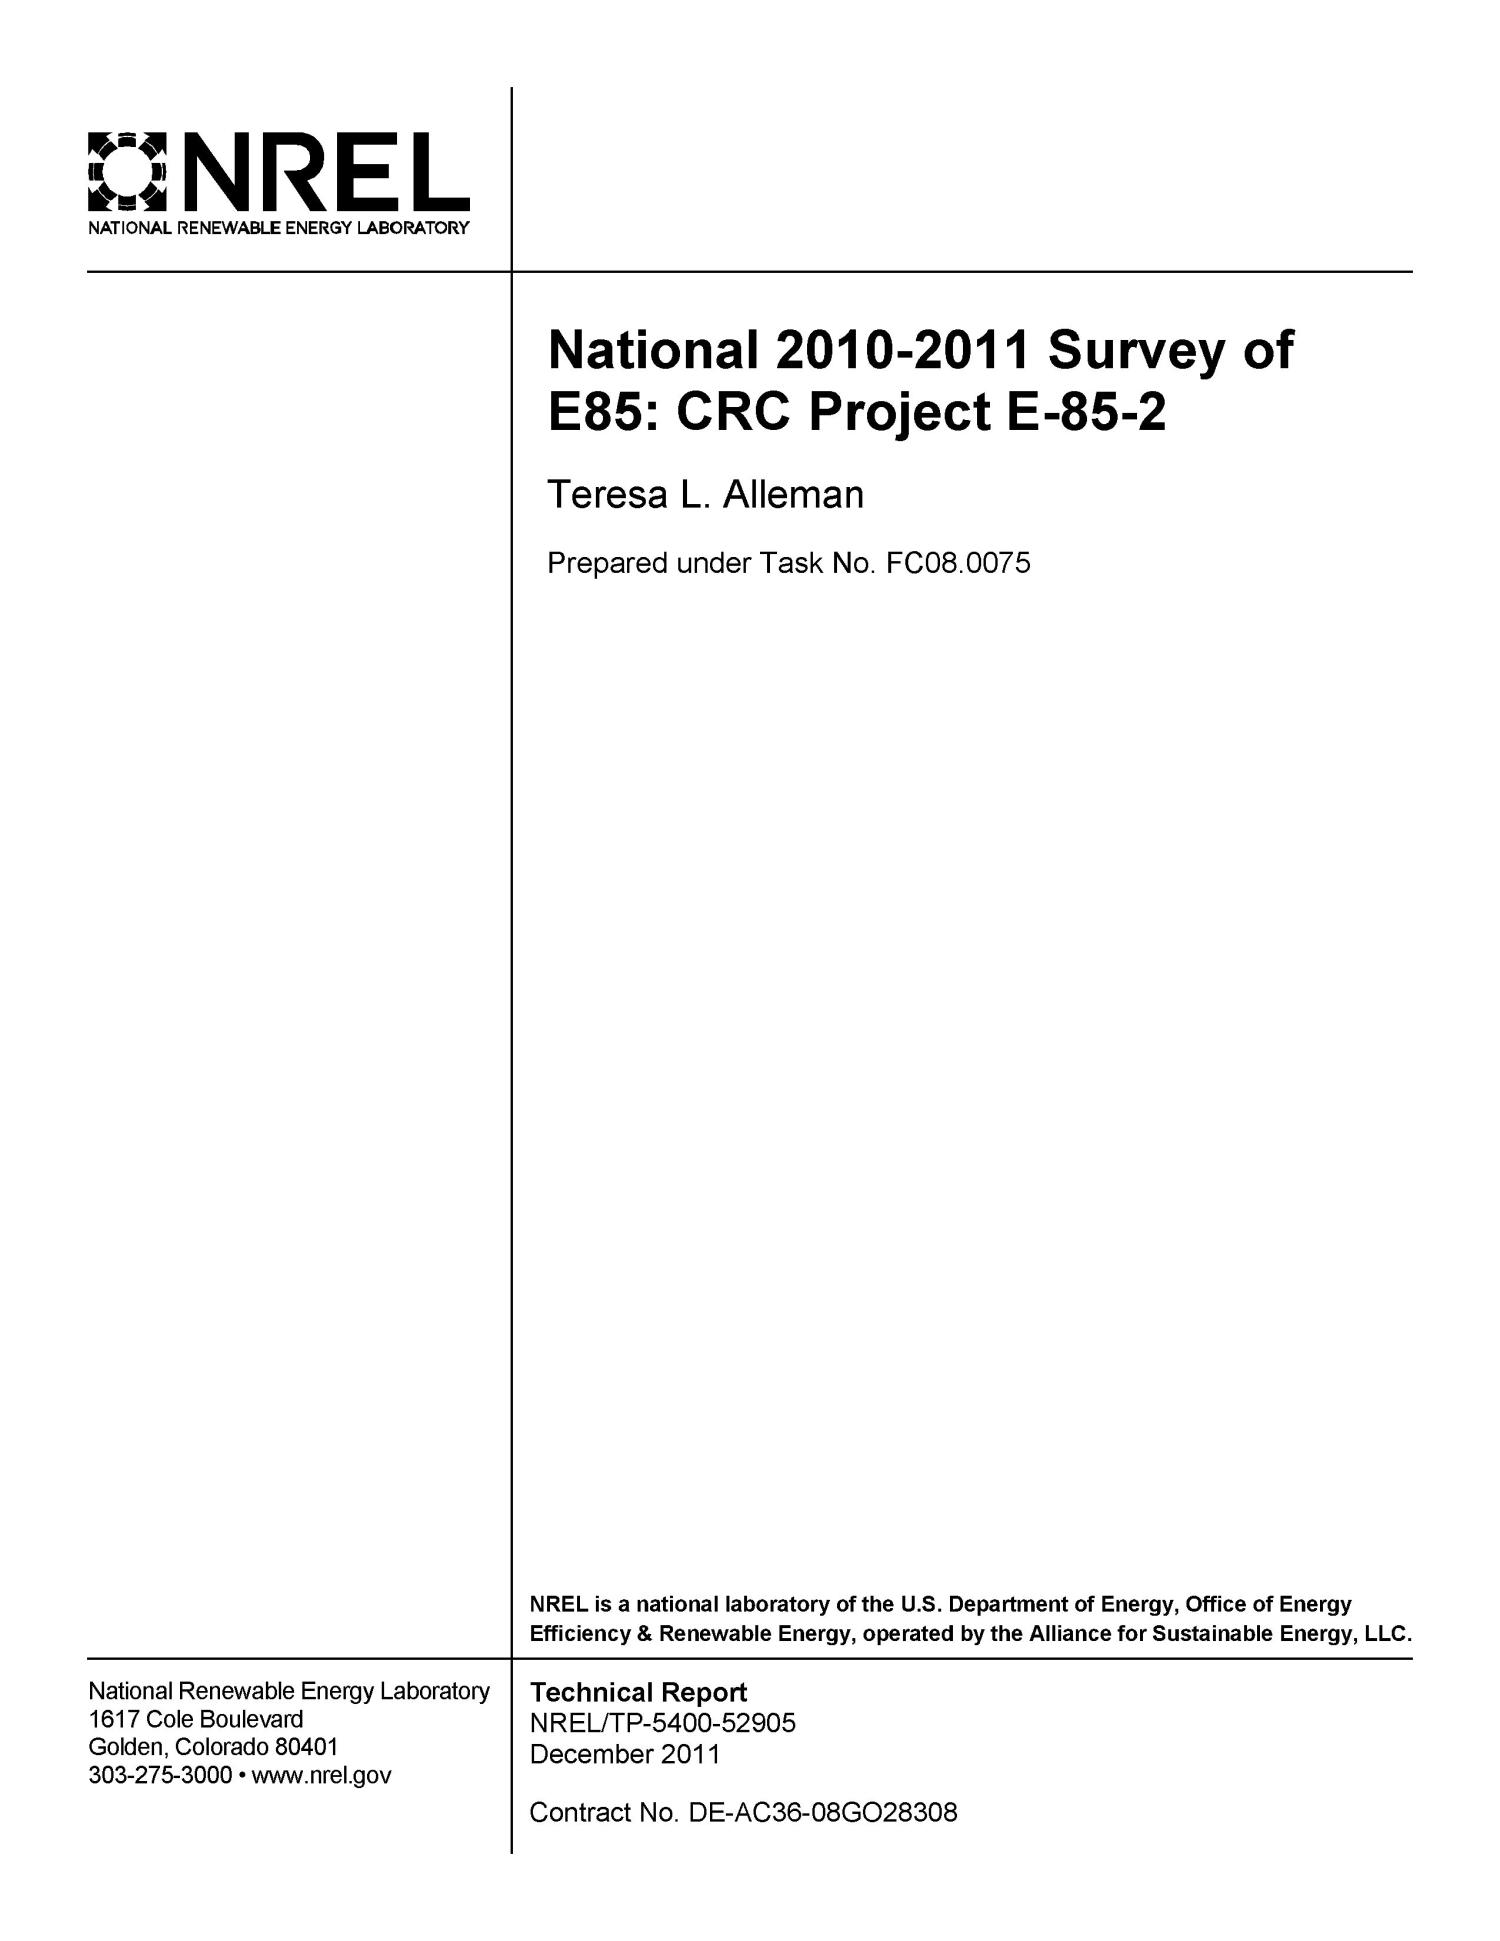 National 2010-2011 Survey of E85: CRC Project E-85-2                                                                                                      [Sequence #]: 2 of 38